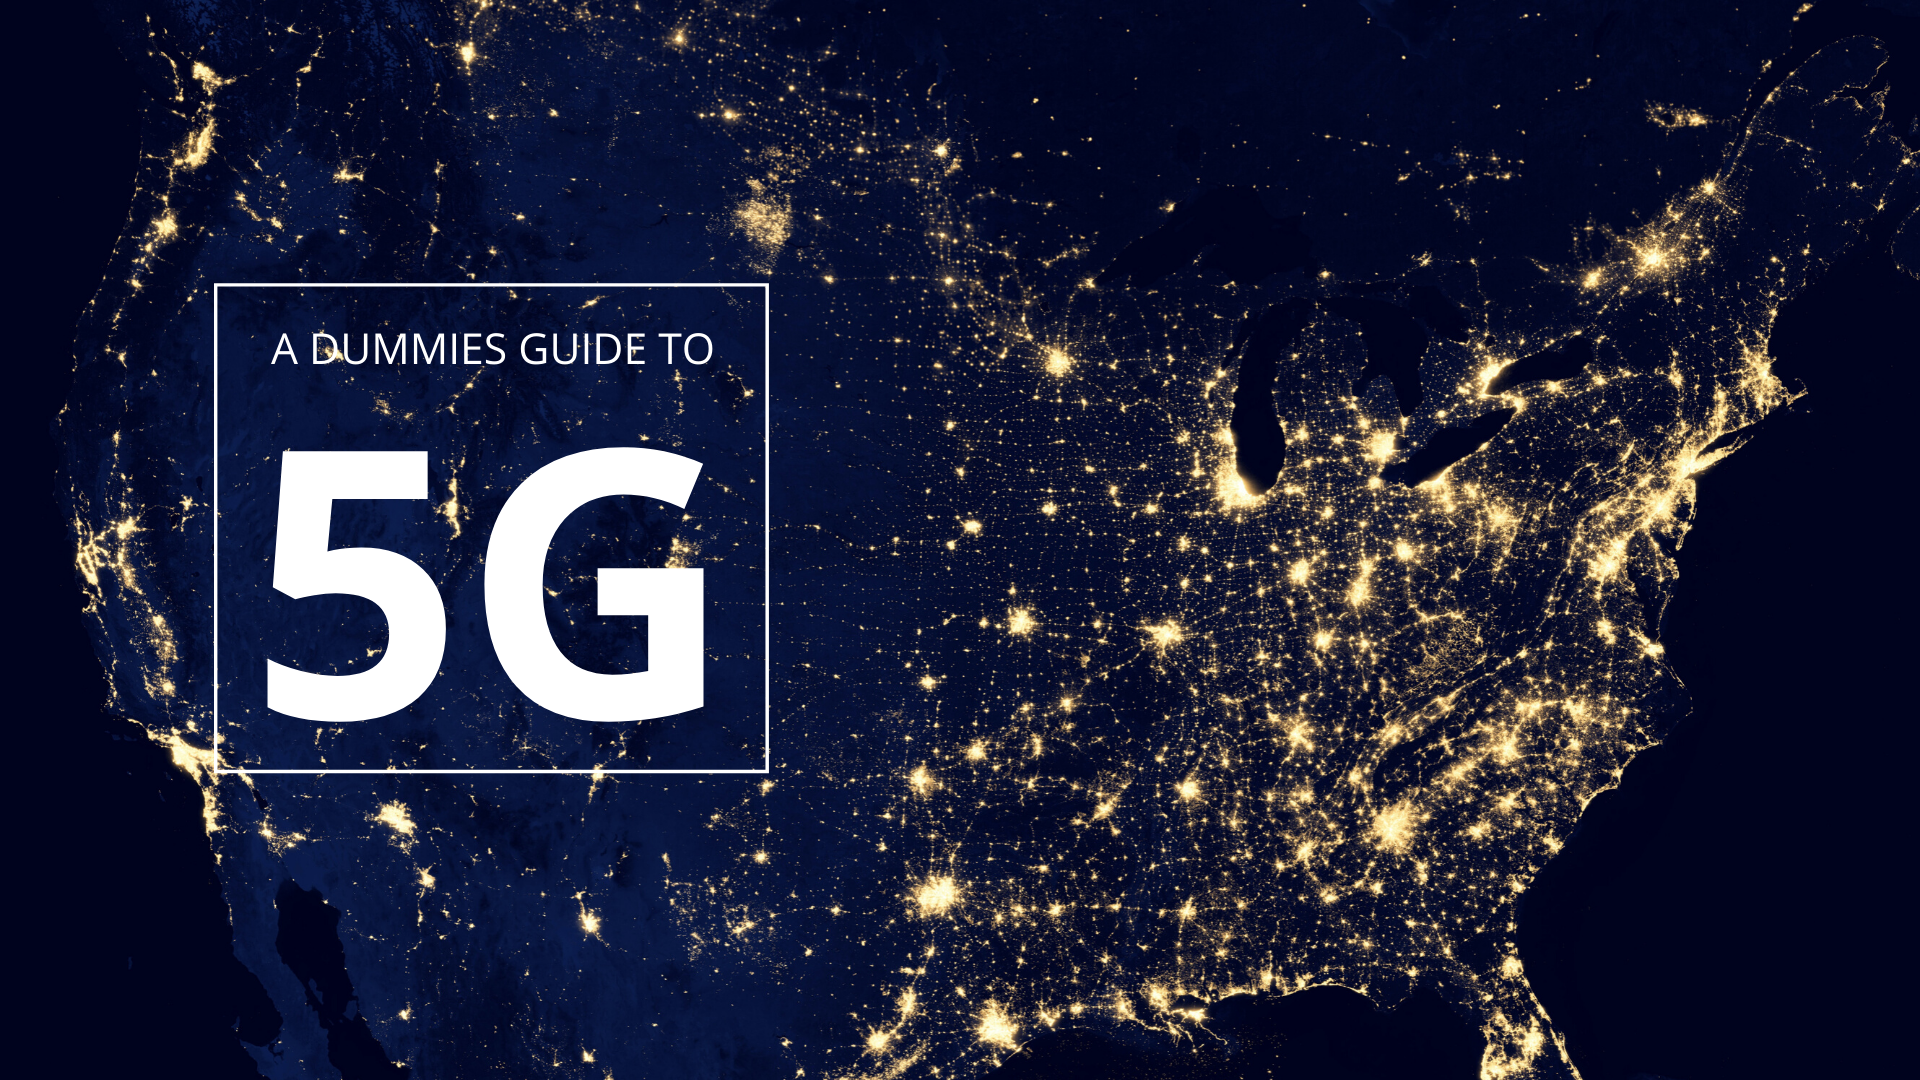 A Dummies Guide to 5G